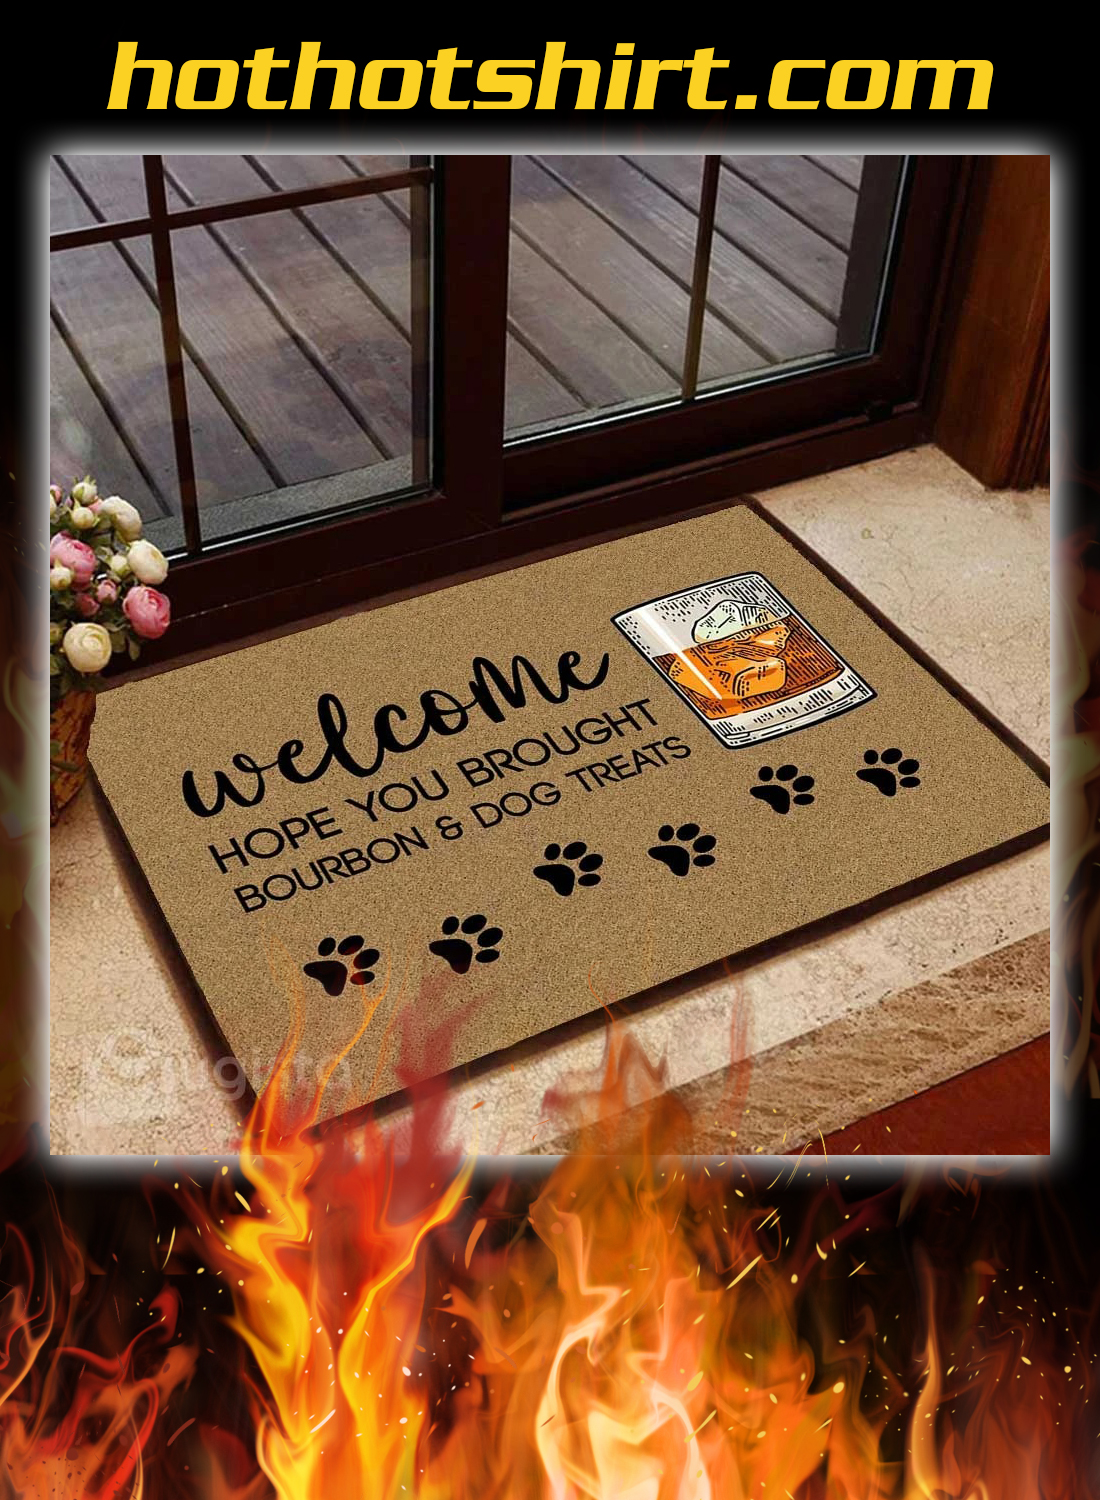 Welcome hope you brought bourbon and dog treats doormat - detail